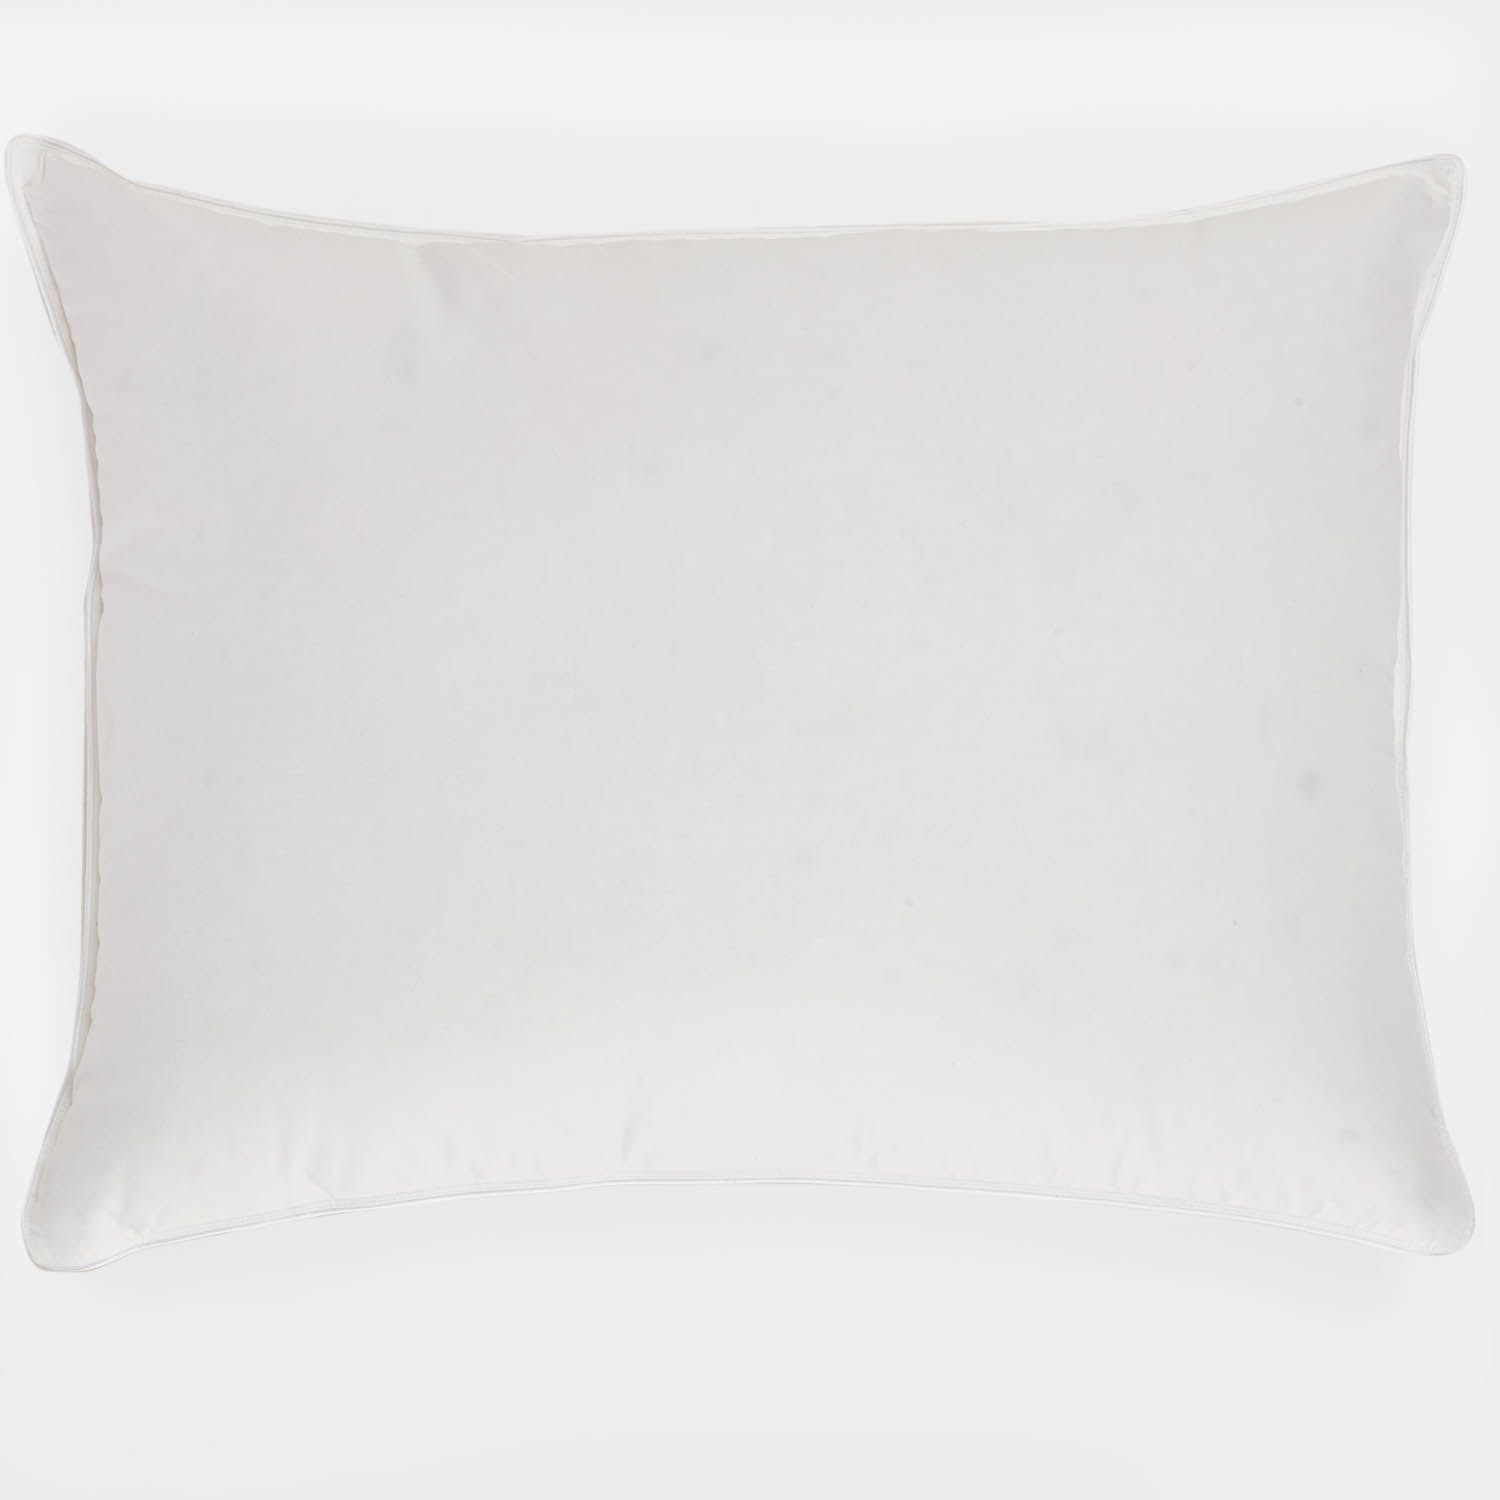 Product Image - Bohemia Firm Pillow